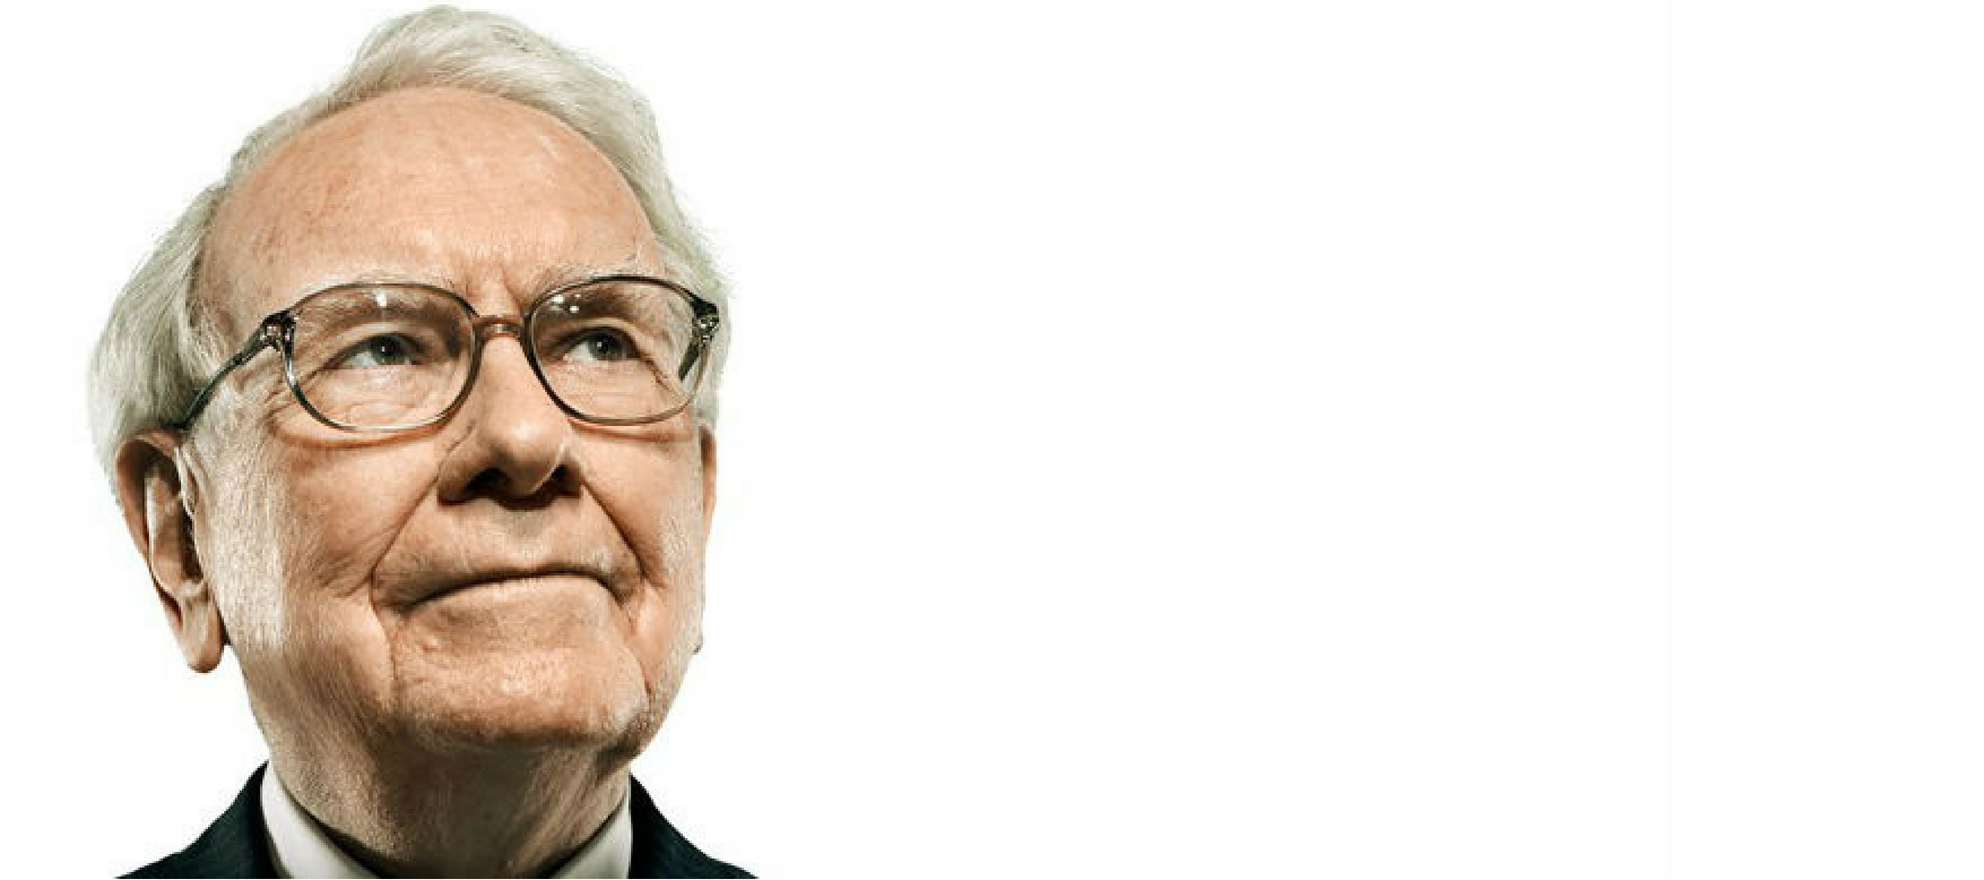 5 tips for investing in real estate like Warren Buffet